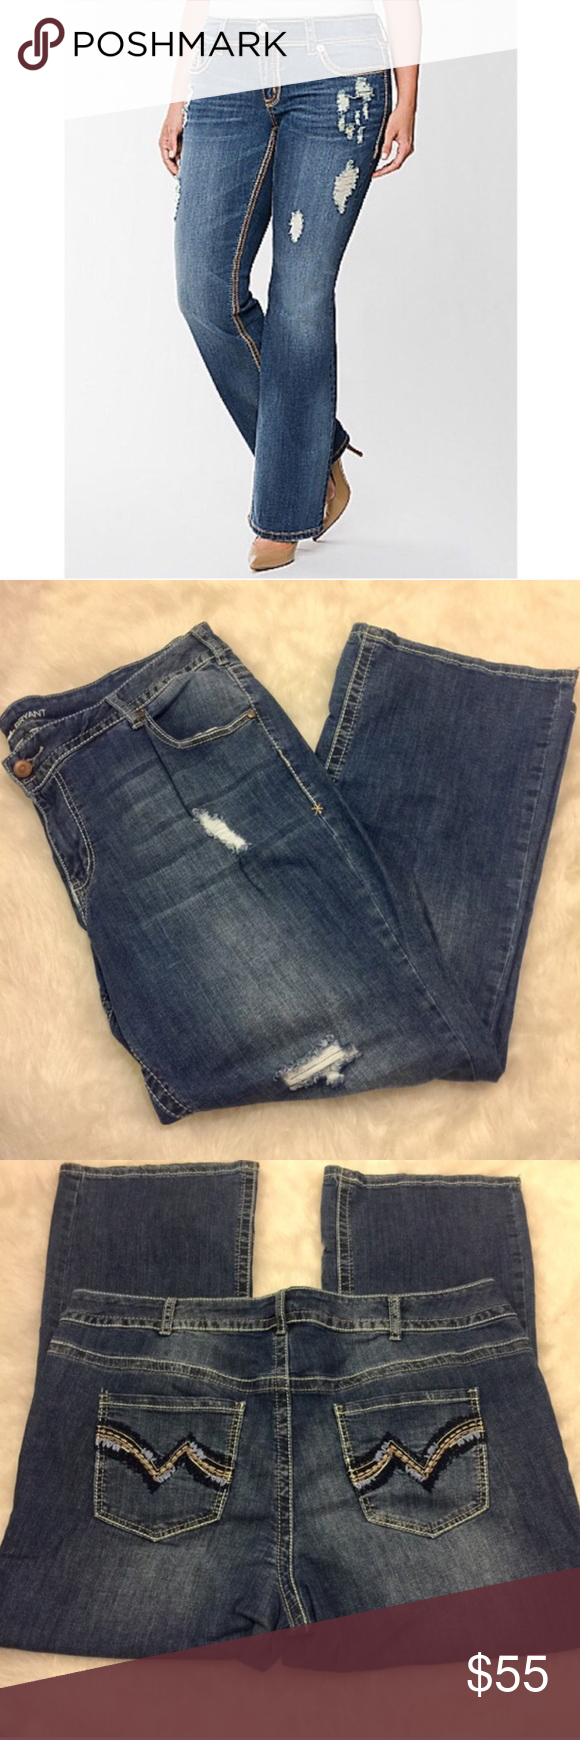 •Lane Bryant Distressed Bootcut Jeans• Adorable Lane Bryant distressed bootcut jeans with threaded embellishment on back pockets. Gently worn, in good condition. 99% Cotton / 1% Spandex. Size 22 Petite. Inseam: approx 29 inches. Lane Bryant Jeans Boot Cut